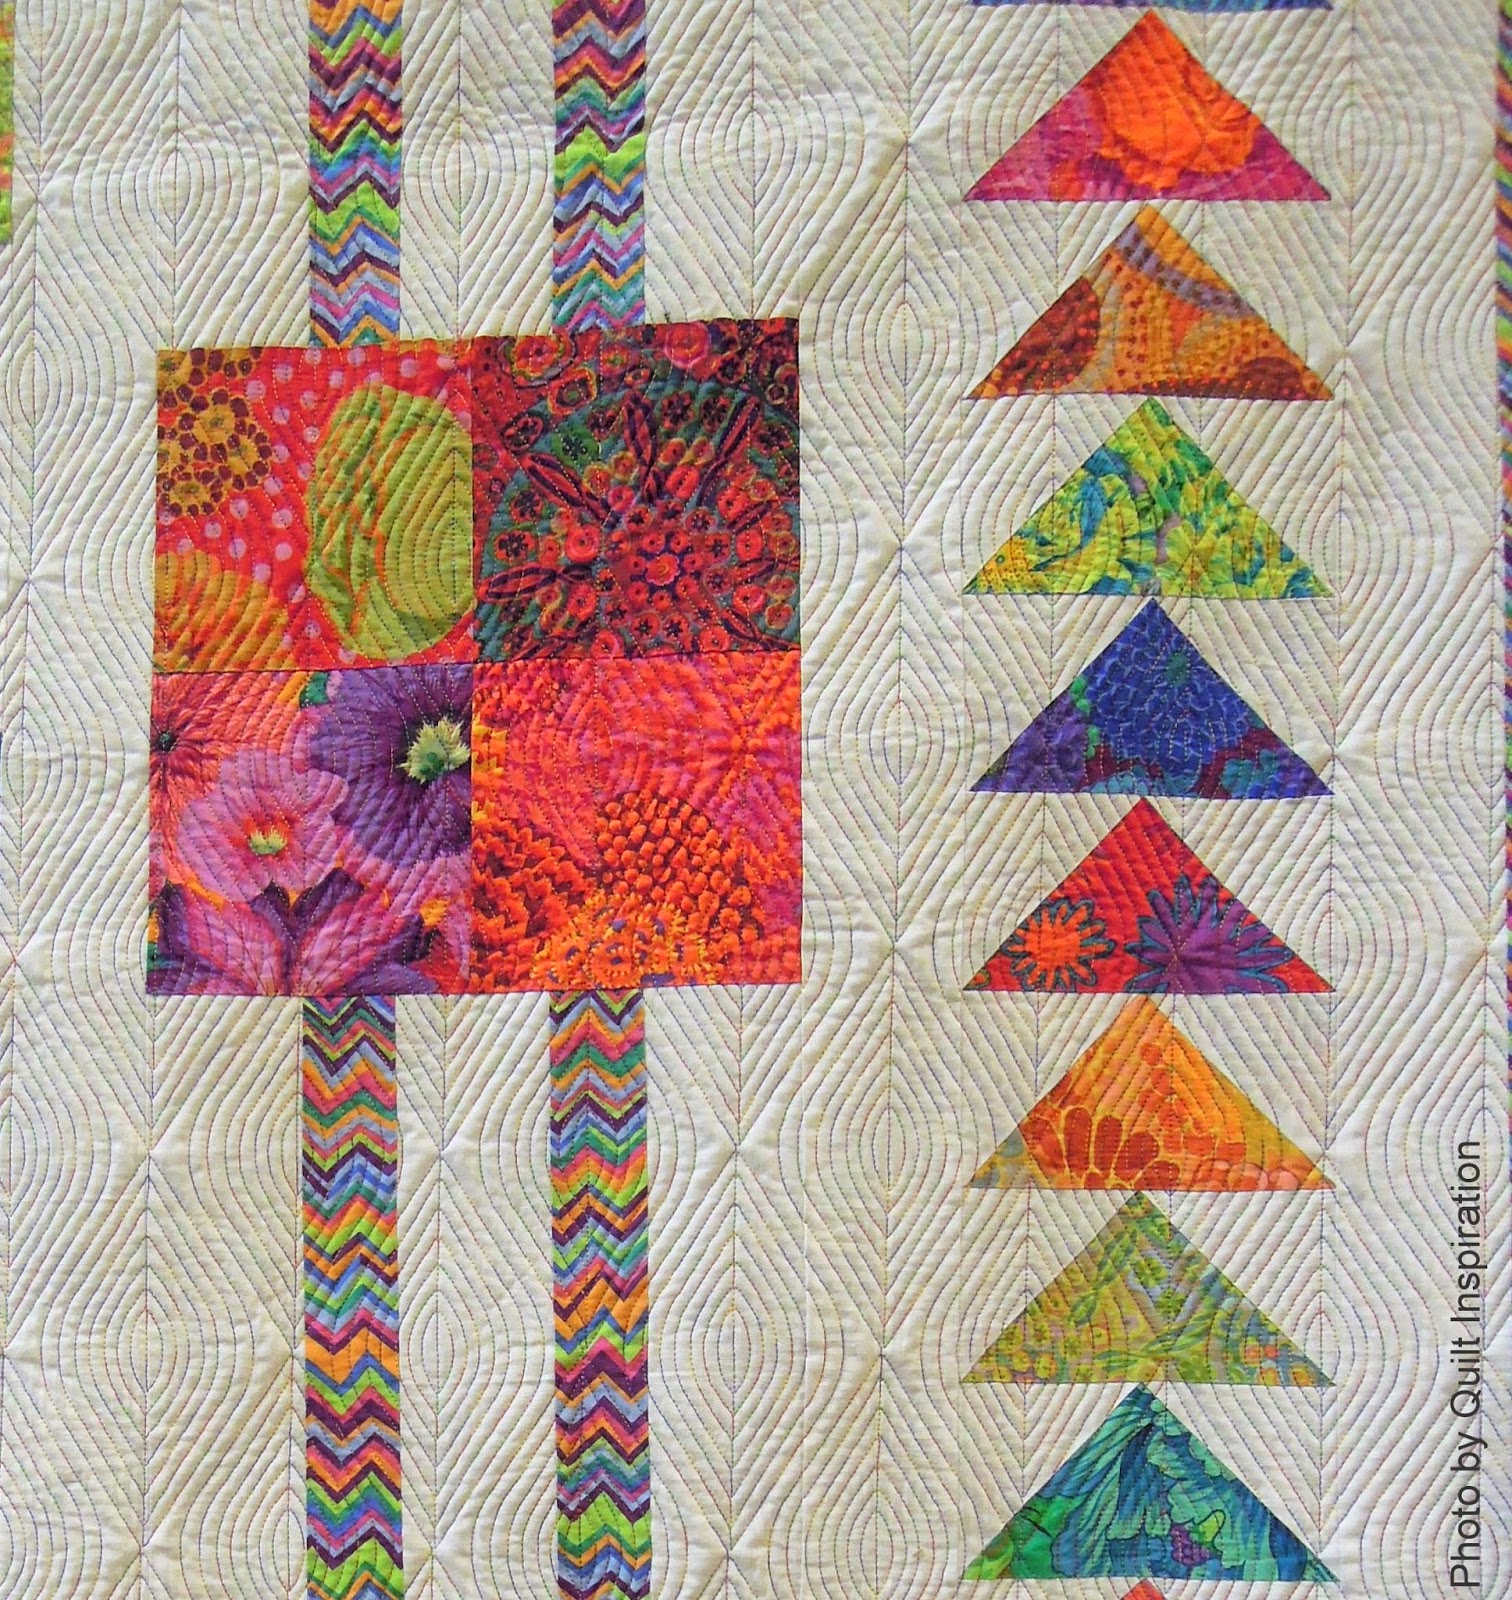 Quilt Inspiration: Highlights of the 2014 Arizona Quilters Guild show - Day 3